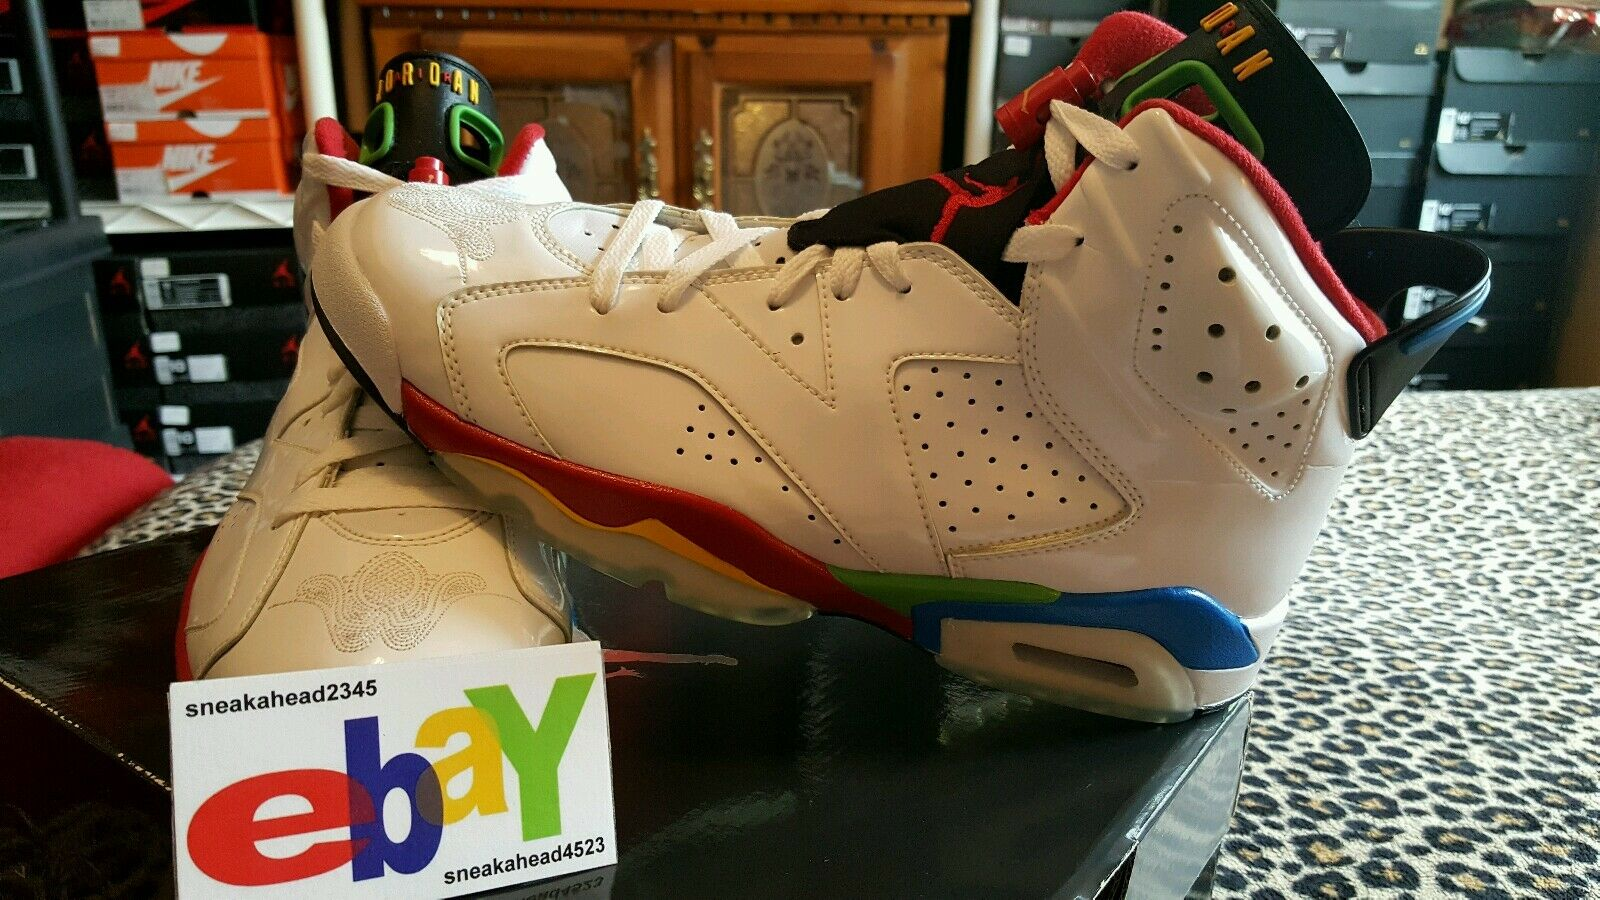 Air Jordan 6 Retro Olympic 3 26 08 WHT VRSTY RD-GRN BN-NW BL 325387 161 2018